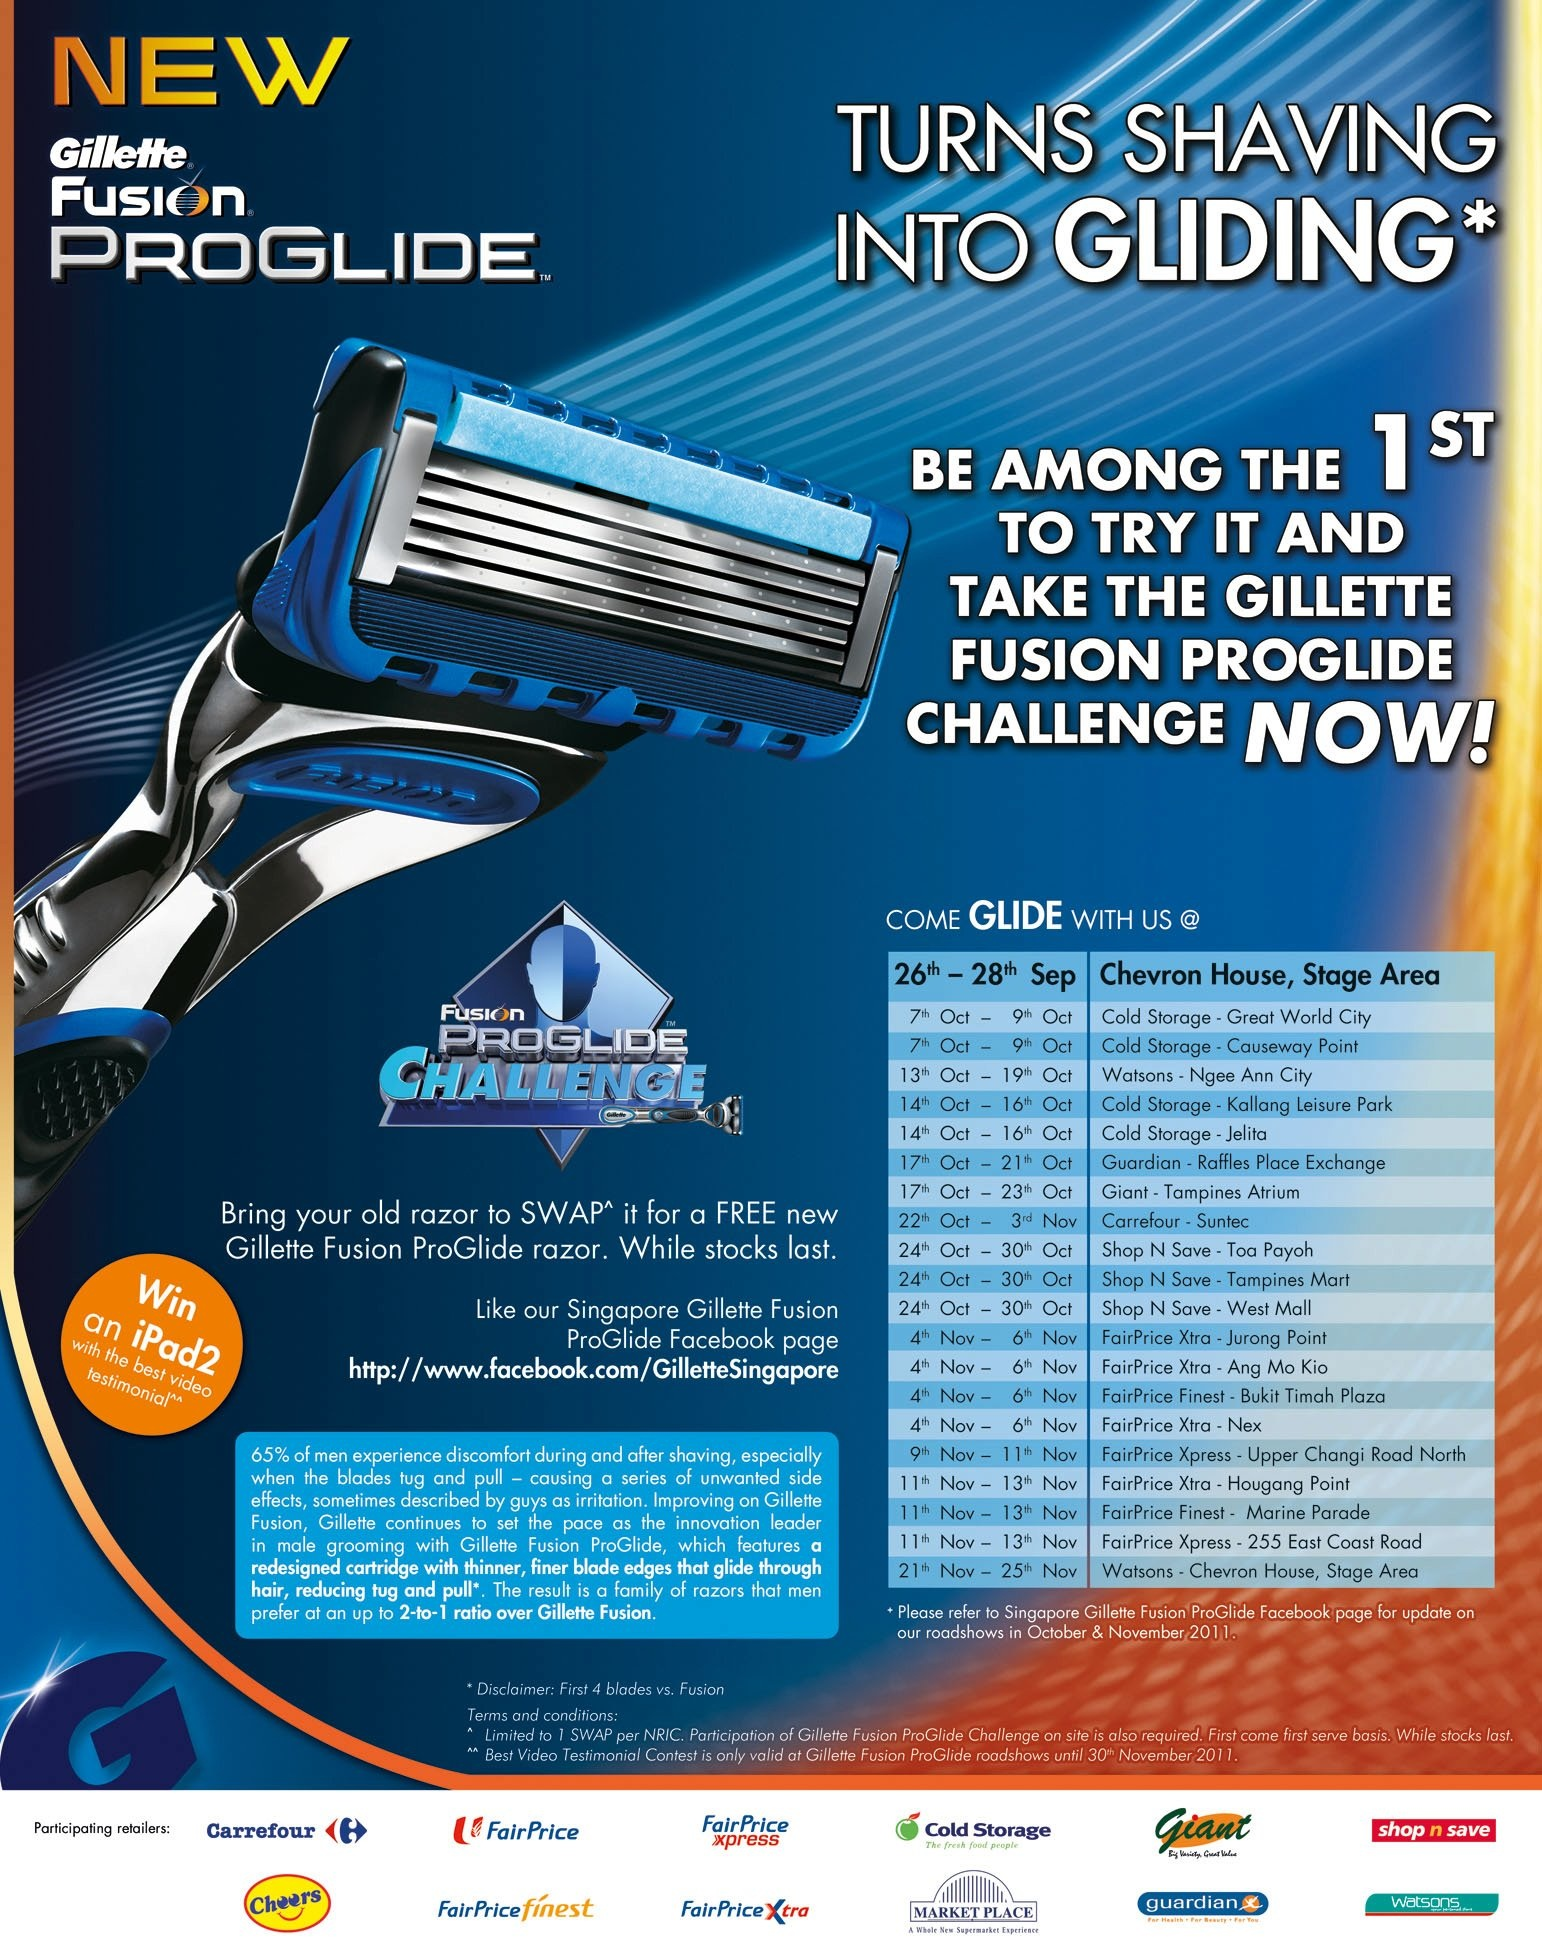 Gillette Fusion ProGlide Challenge and Giveaway